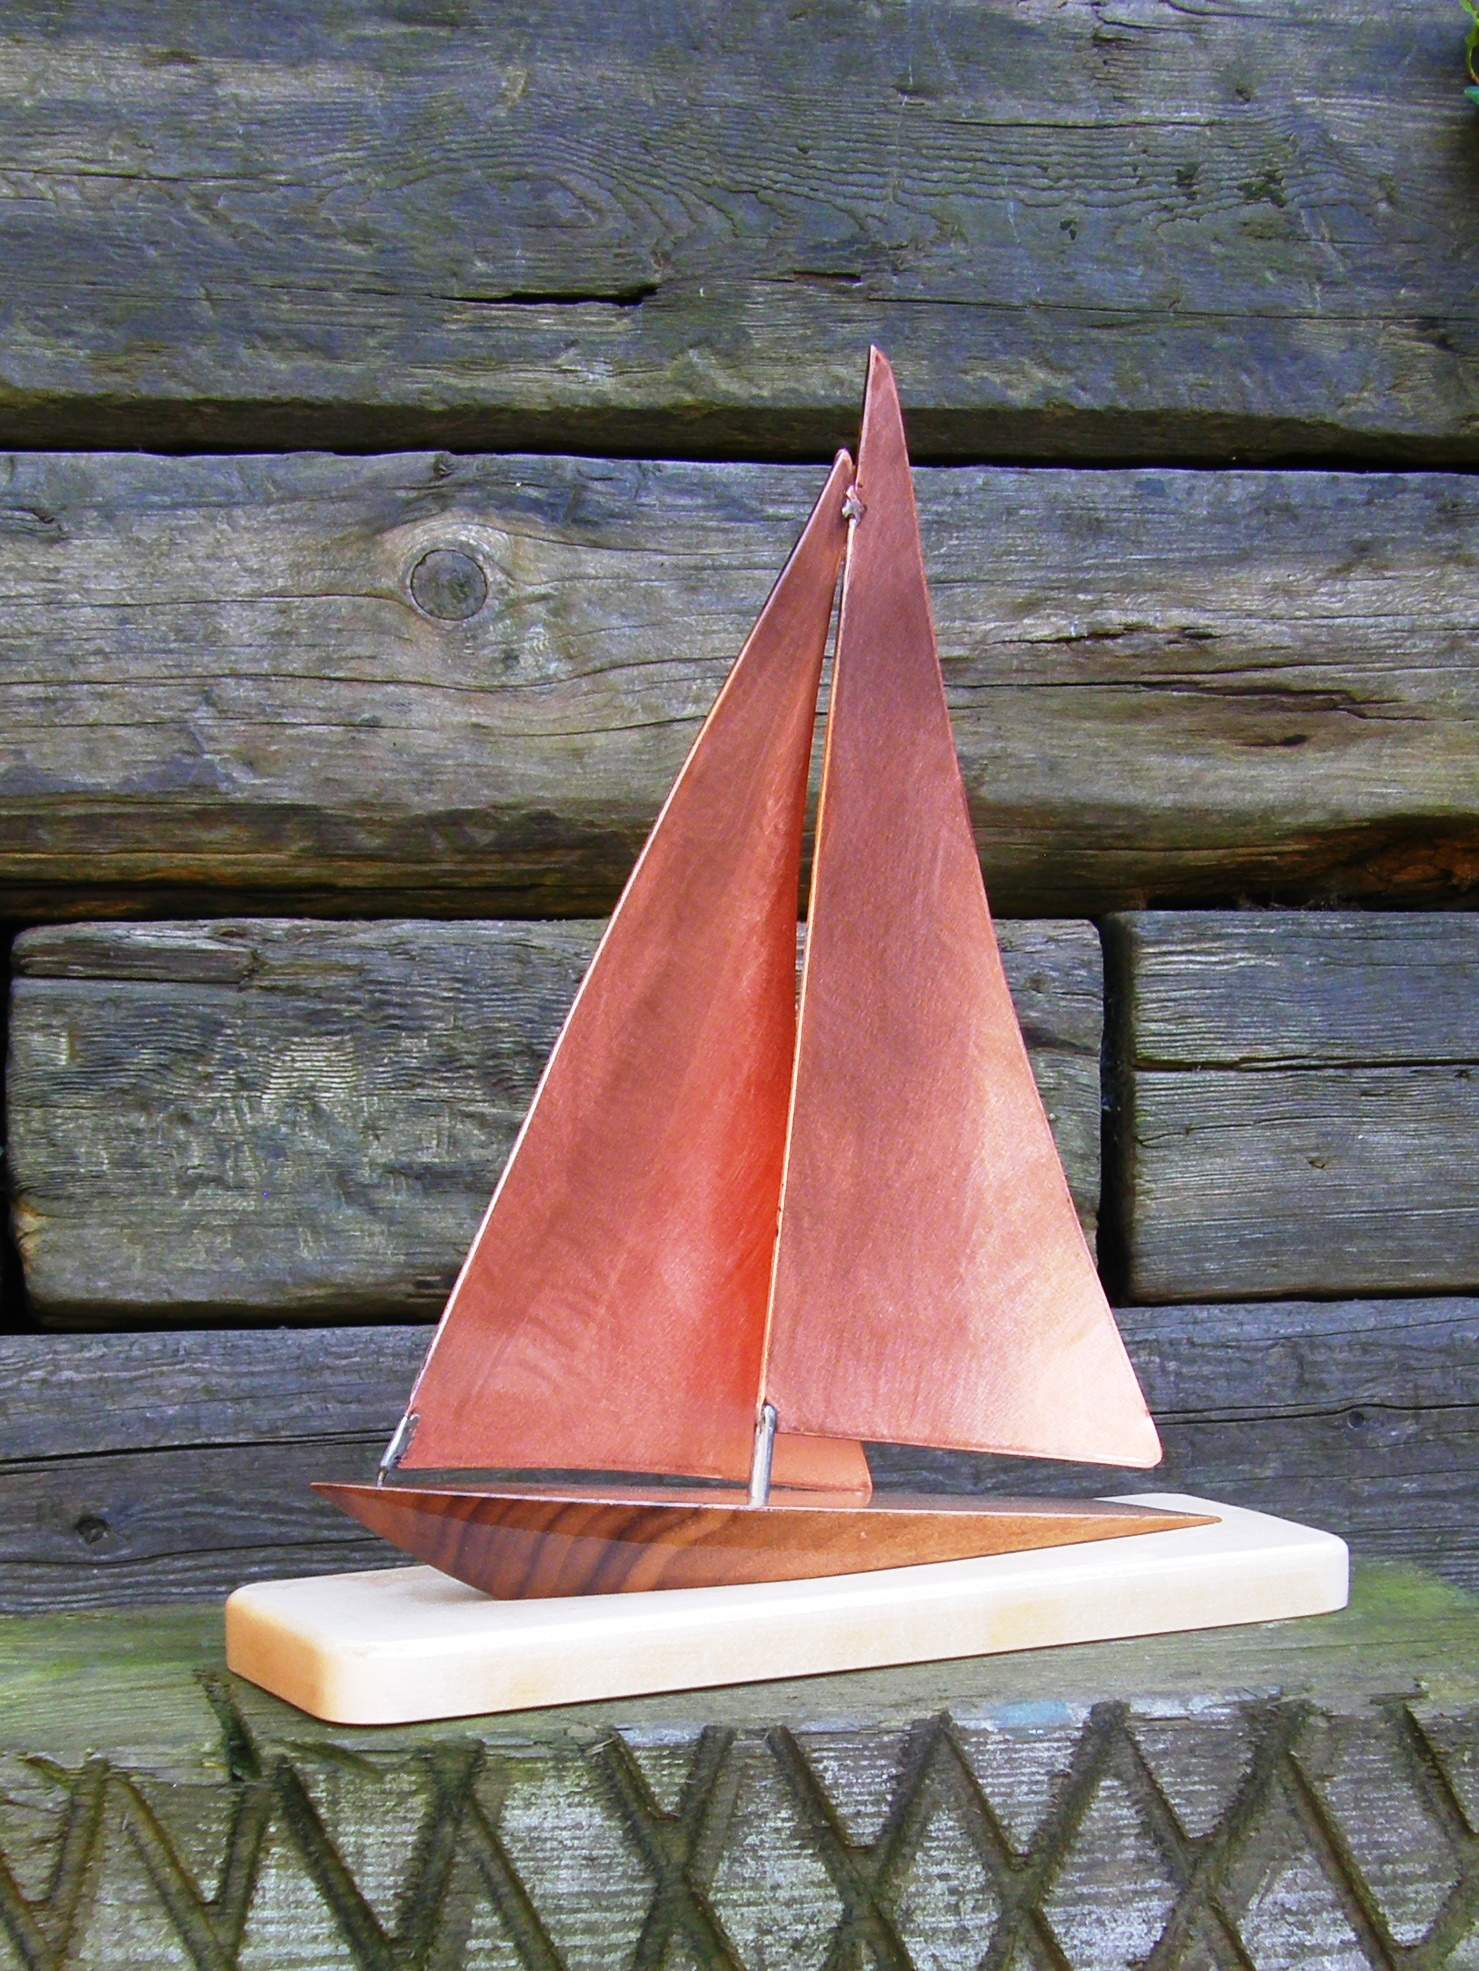 Limited Edition Yacht Design Handmade in Copper with Walnut Hull on Maple base